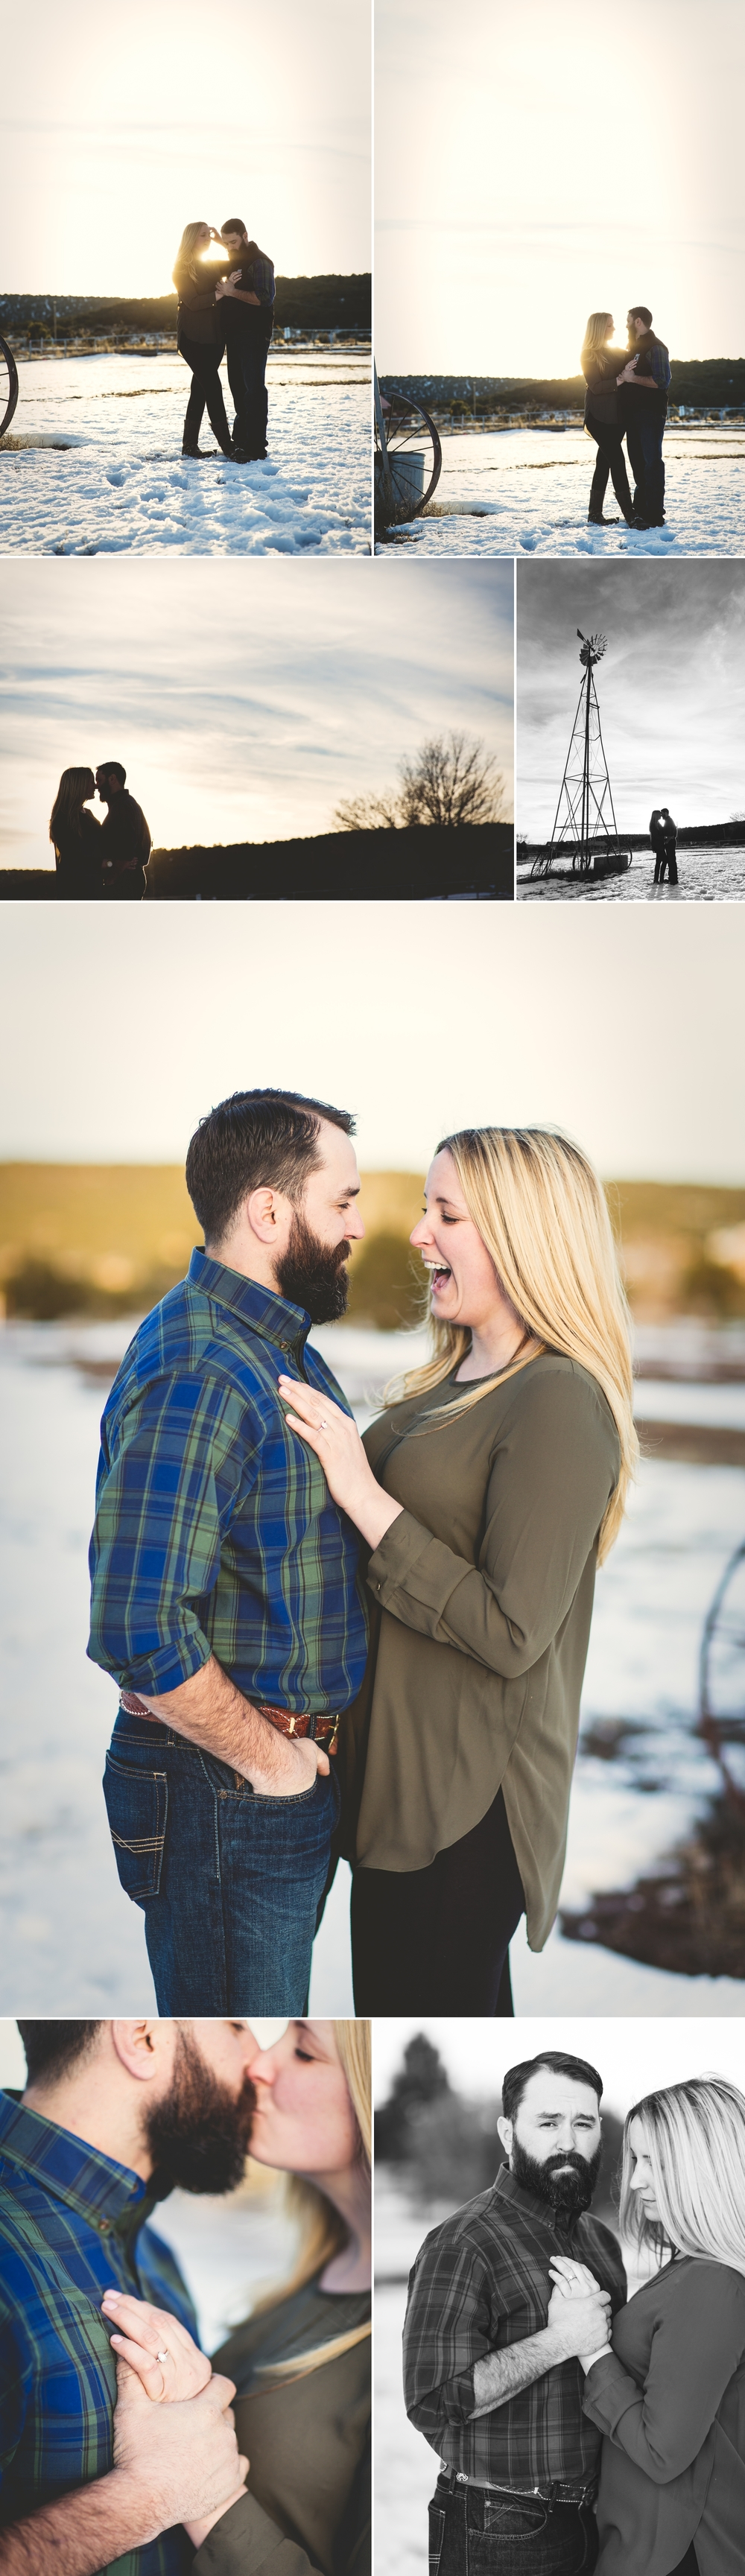 New Mexico Engagment Photography 6.jpg